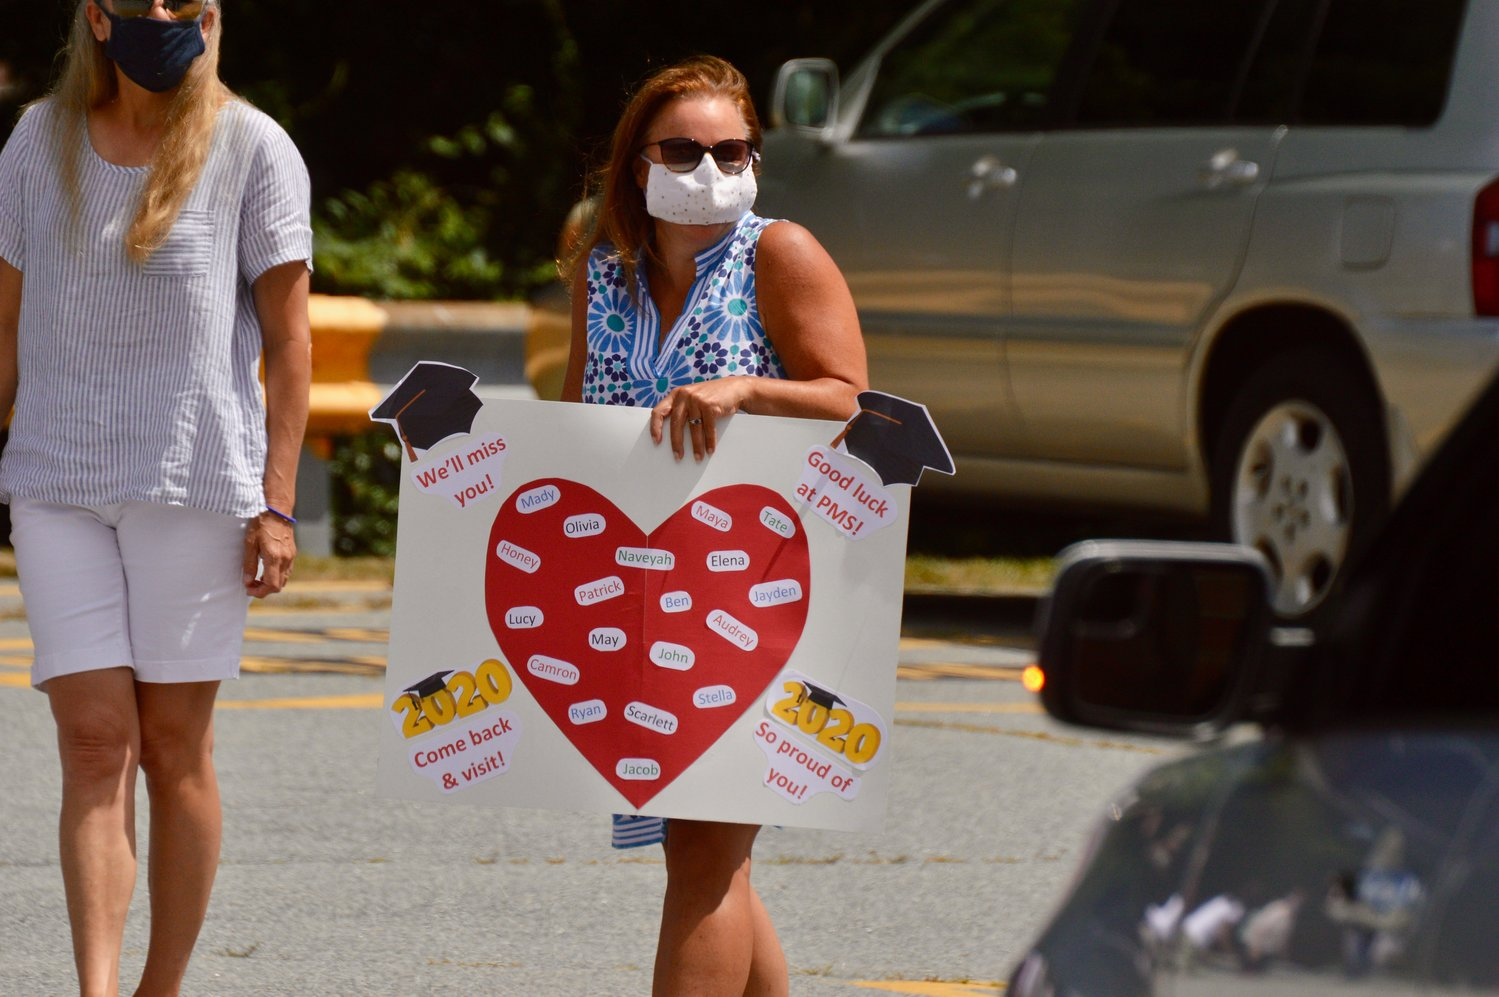 Hathaway School teacher Laurel Oliveira had a sign that listed all of her students.